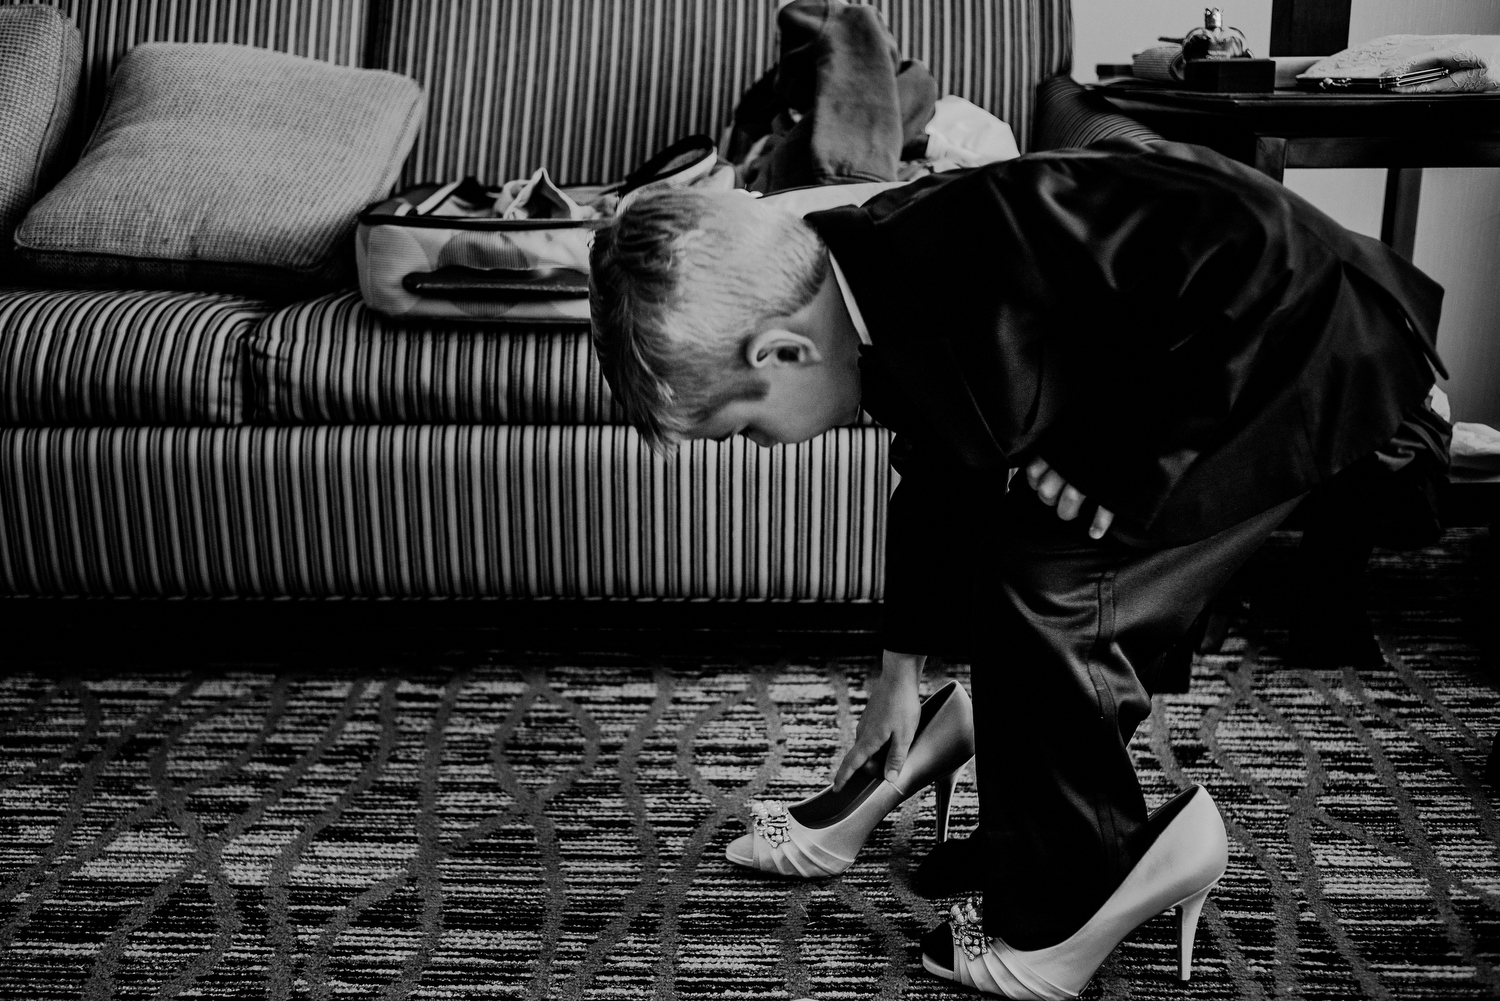 boy playing with bride's wedding shoes